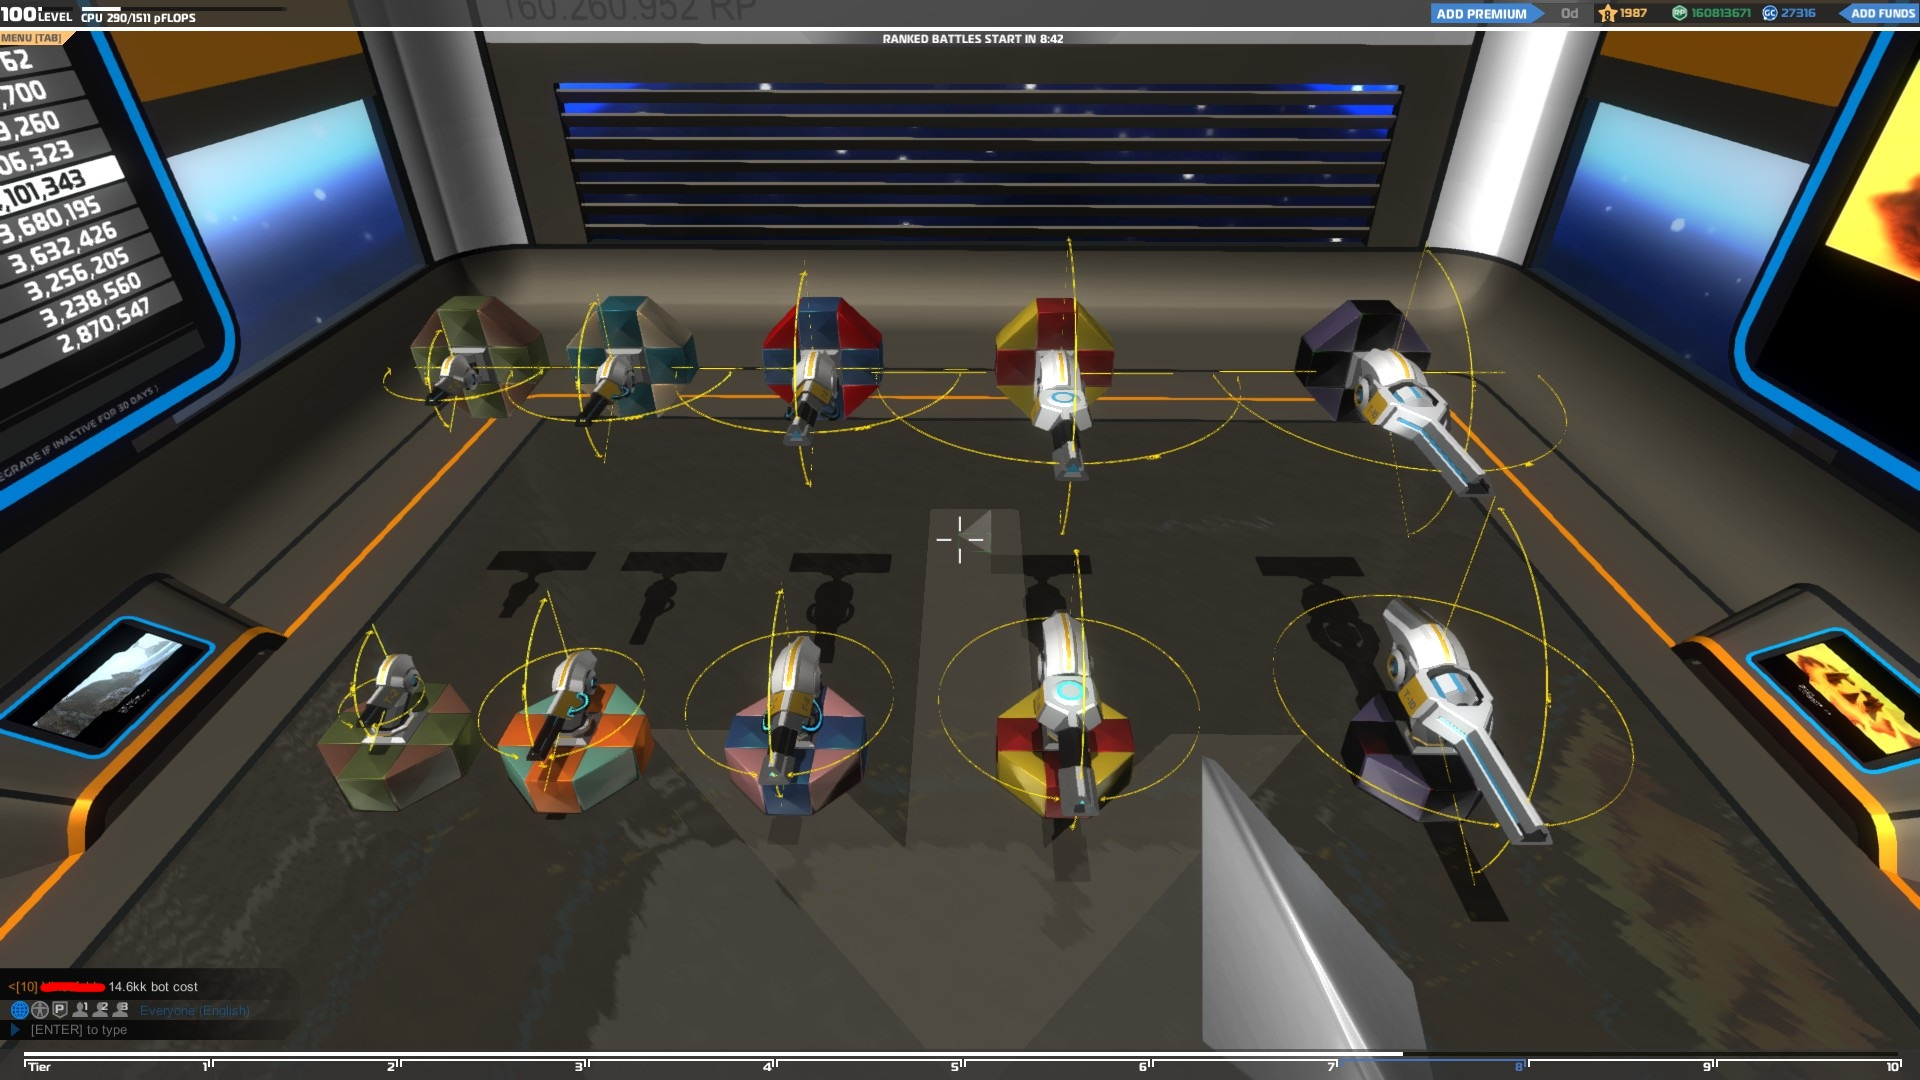 Steam Community :: Guide :: The Ultimate Robocraft Guide